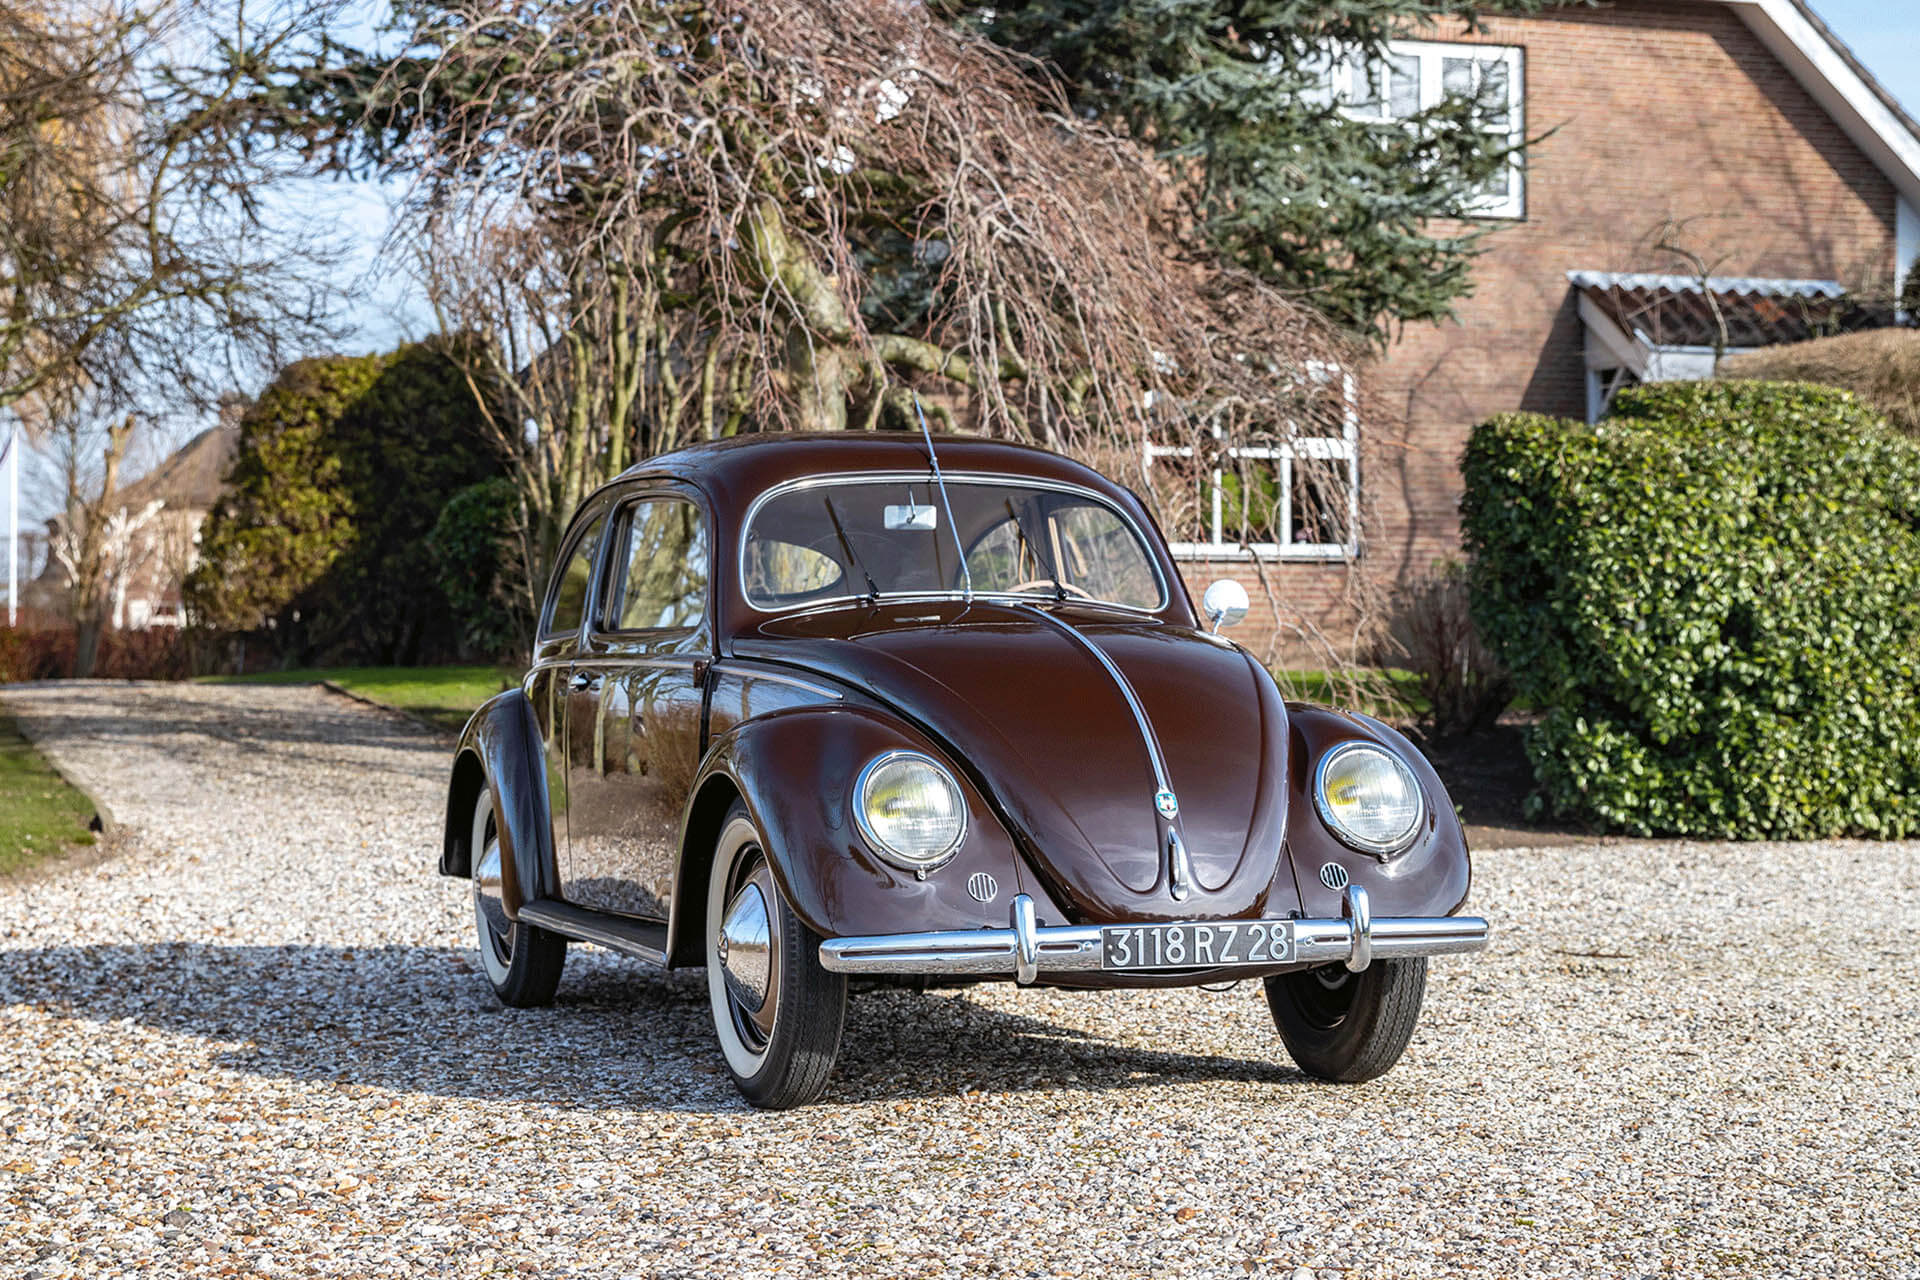 Real Art On Wheels | The Collection 1952 Volkswagen Beetle